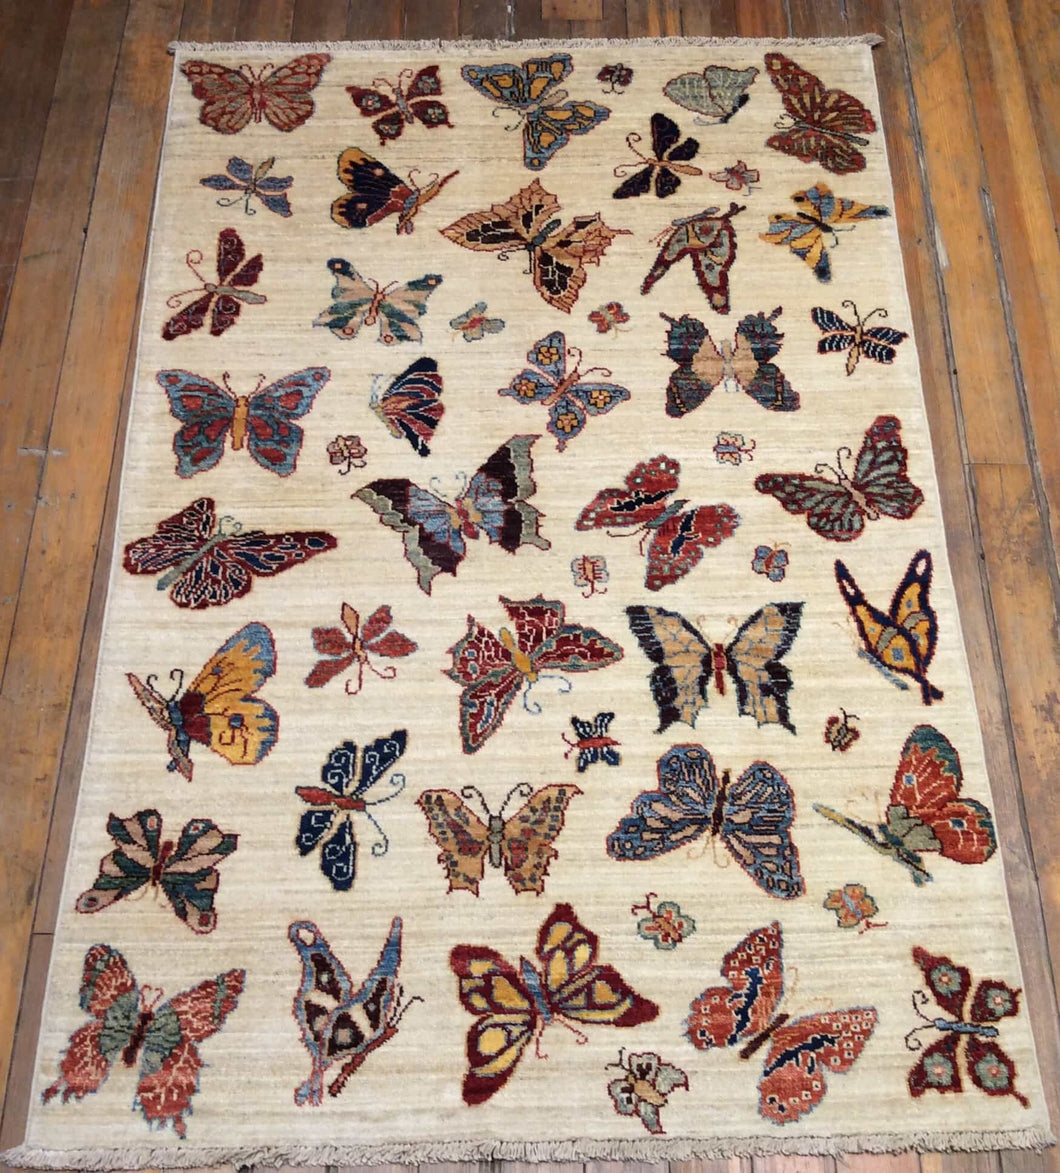 Butterfly Art and Crafts Rug.  5' x 3'.3